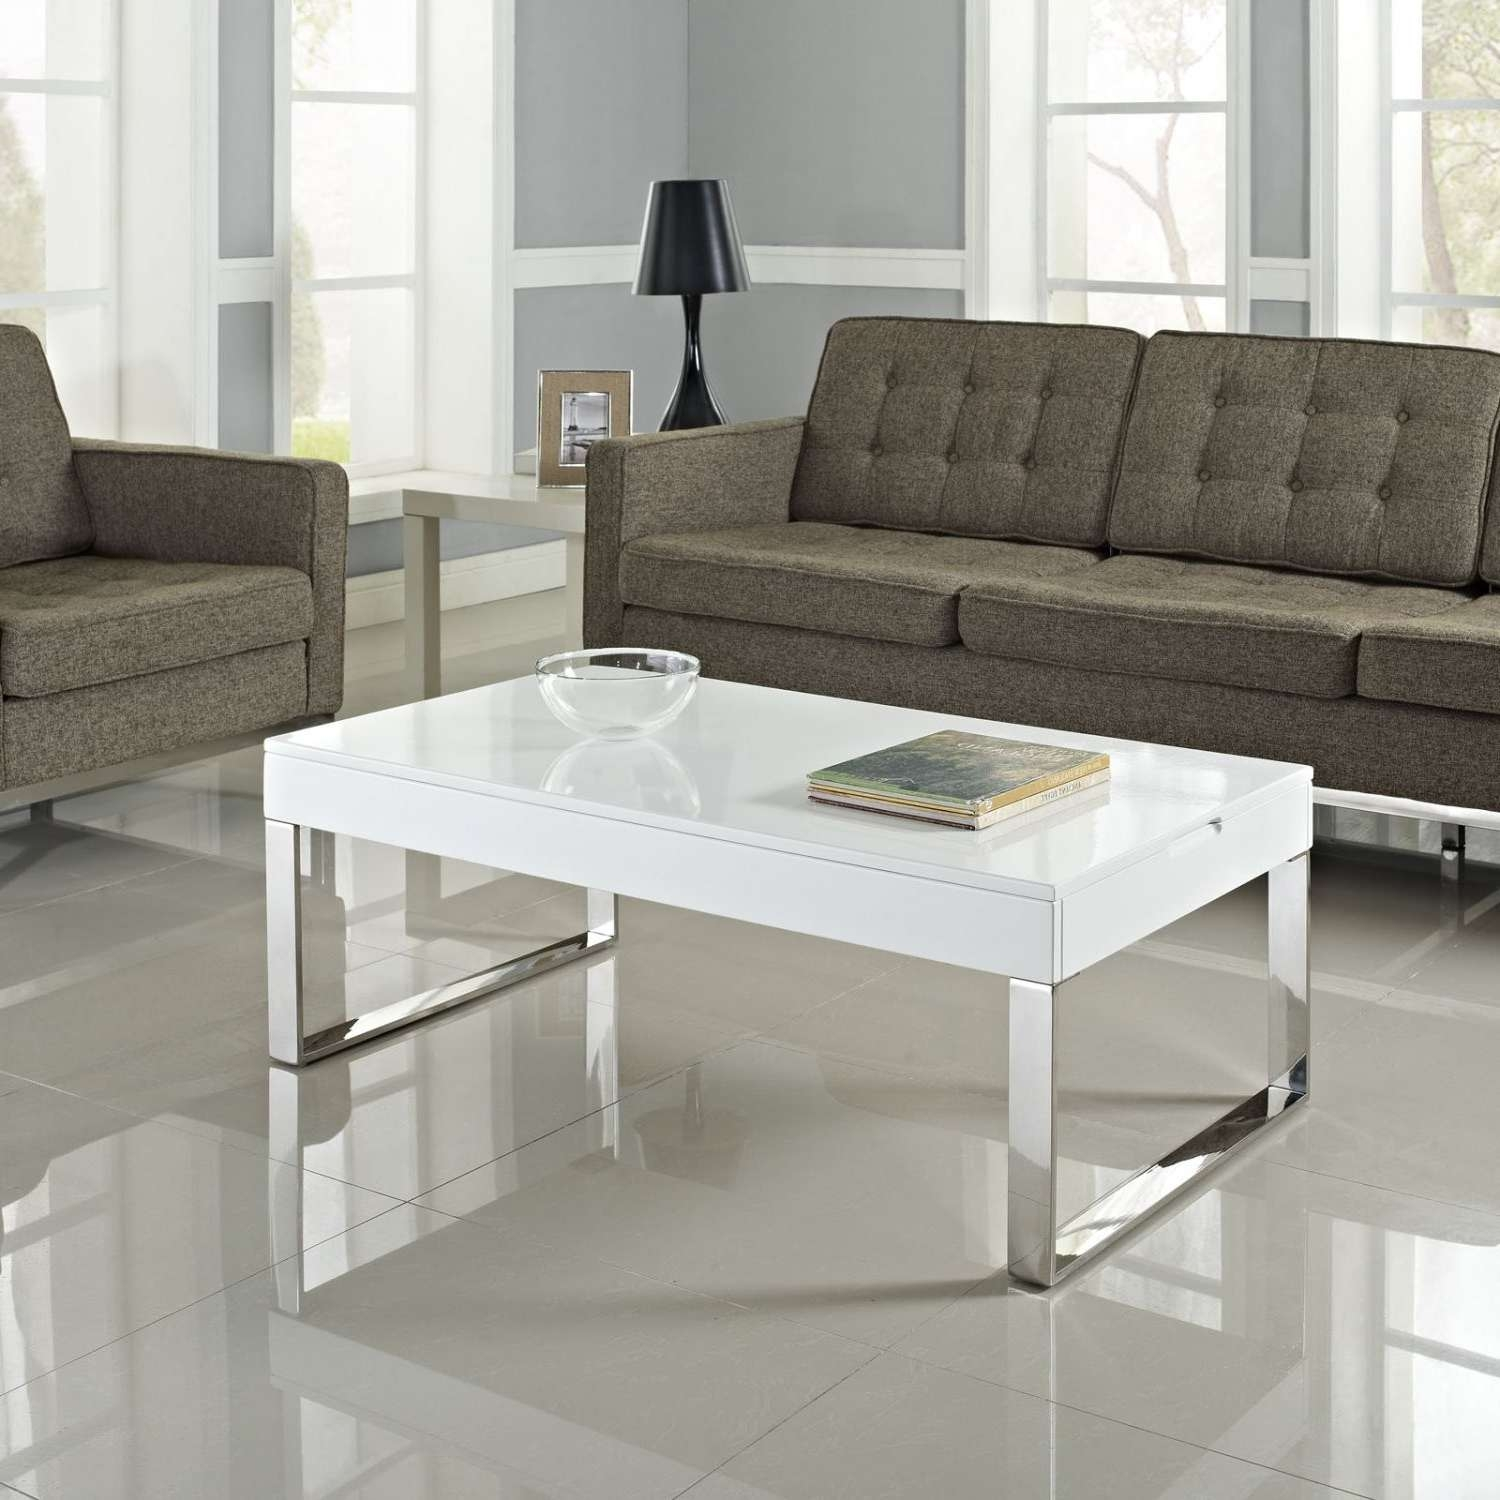 White Gloss Lift Coffee Table – All Furniture Usa Intended For Best And Newest High Gloss Coffee Tables (View 20 of 20)